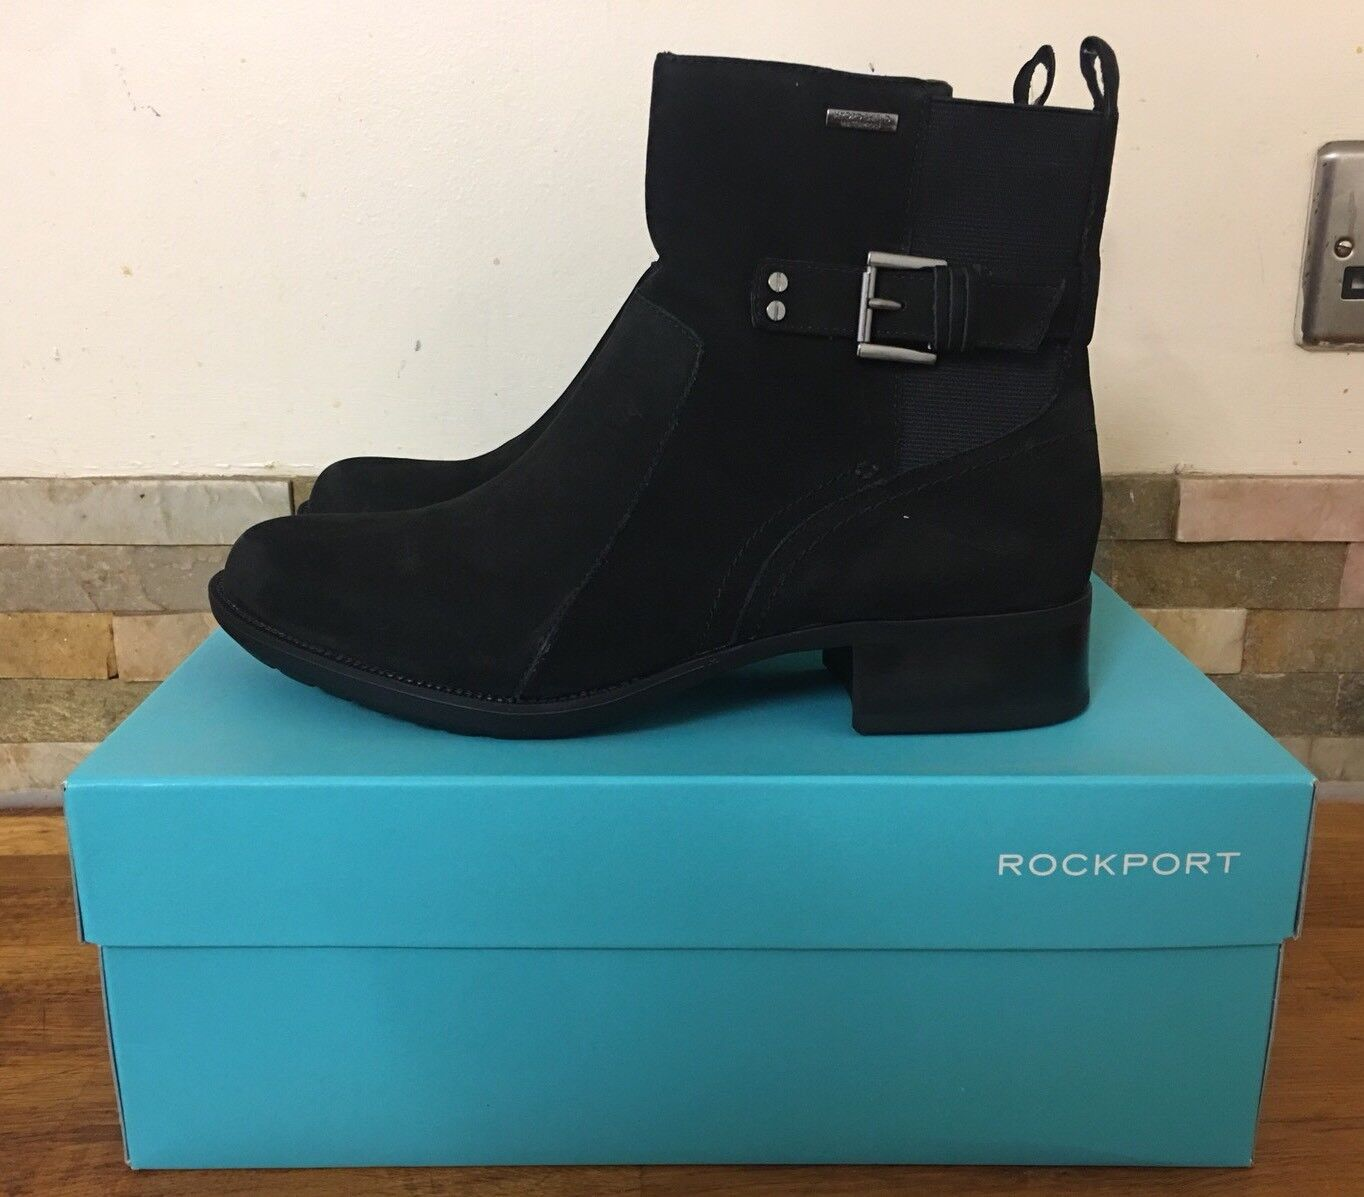 Rockport Gore First St. Waterproof Gore Suede Bootie Größe UK 7.5M/EU 42M/US 10M